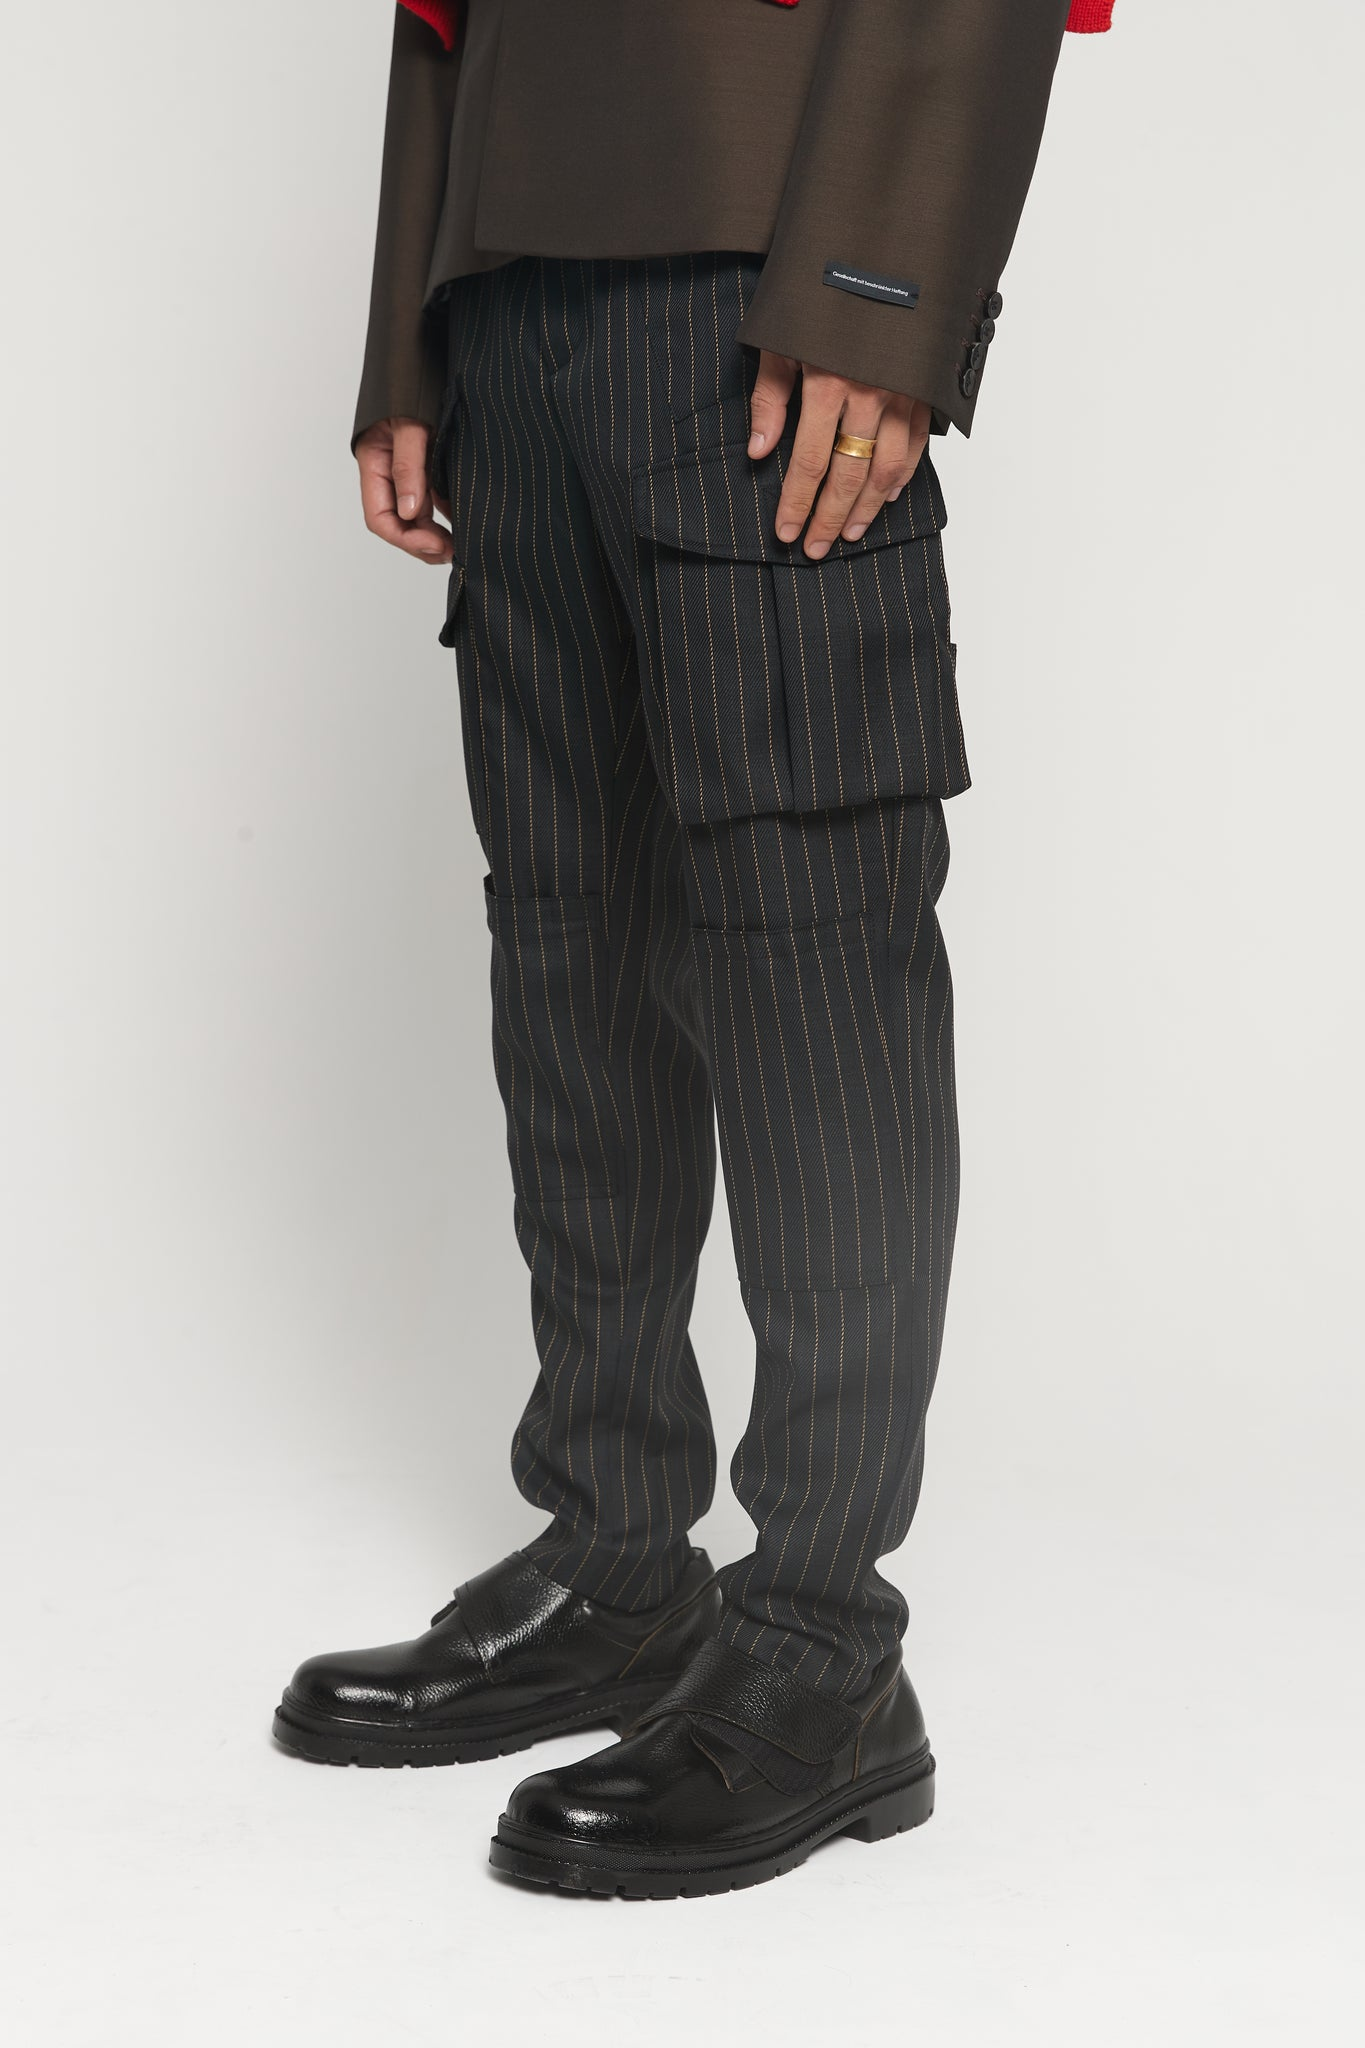 Storm Brown Pinstripe Multi pocket Trousers